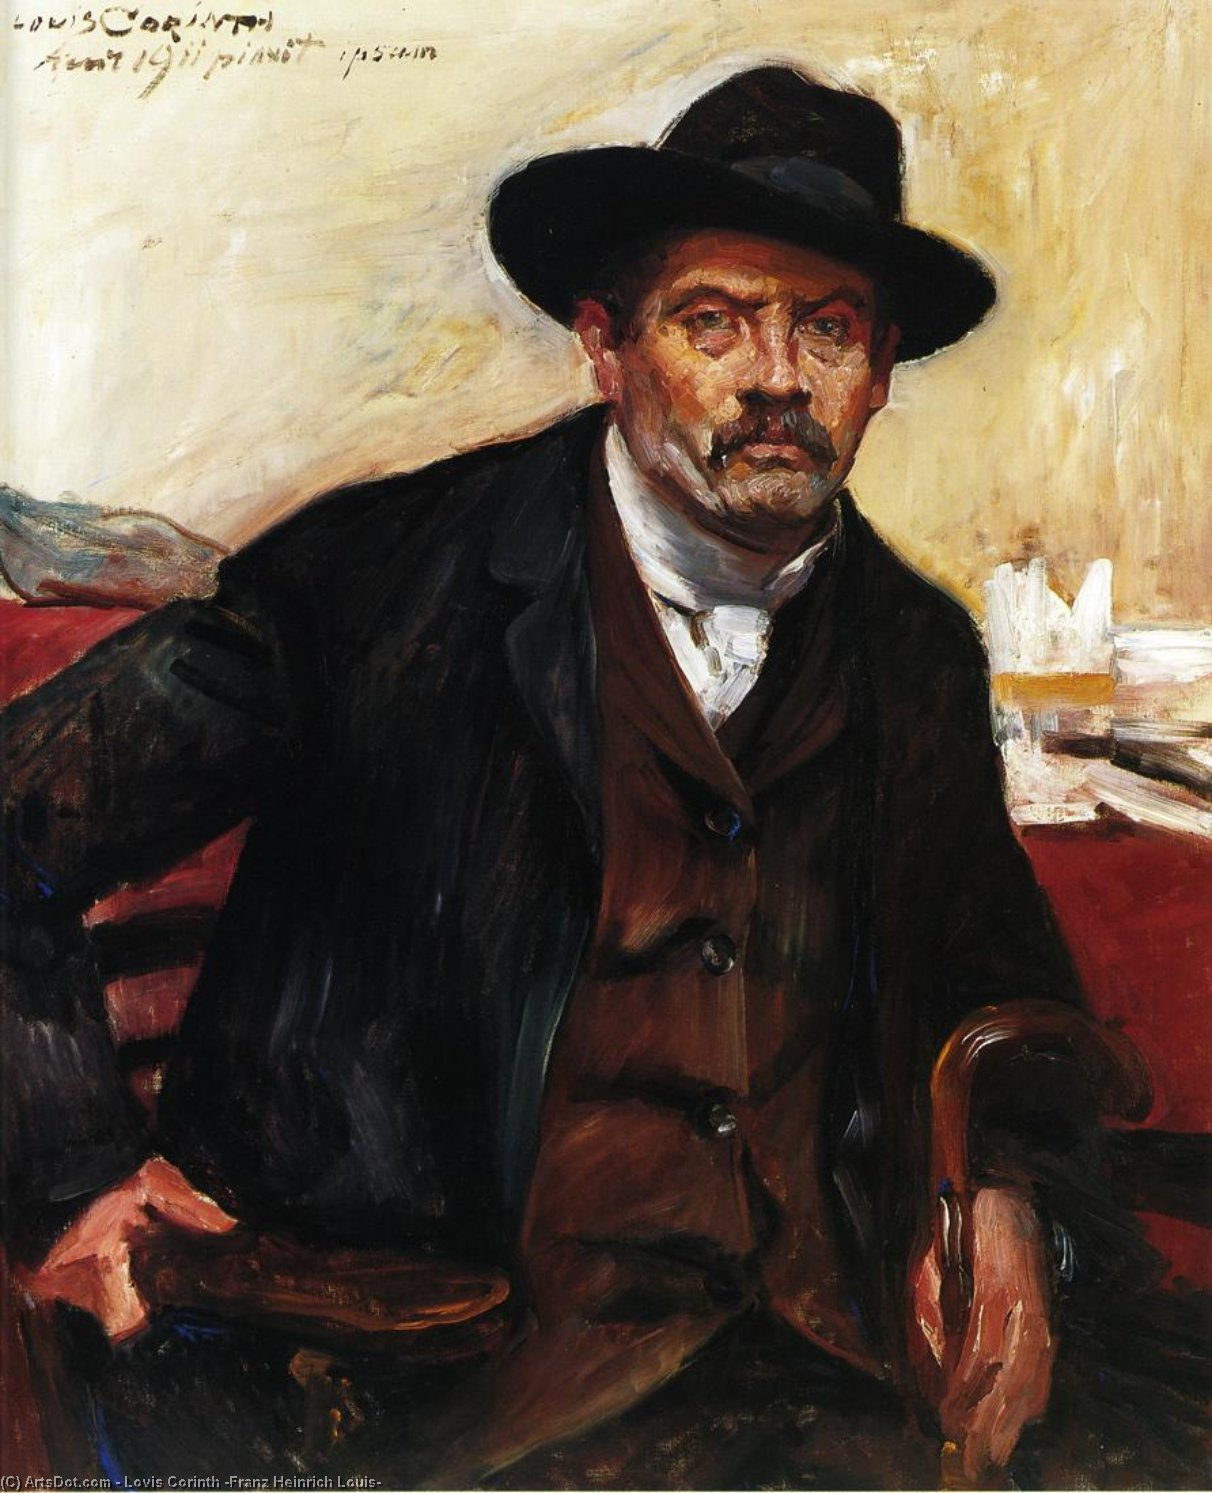 Self Portrait in a Black Hat, Oil On Canvas by Lovis Corinth (Franz Heinrich Louis) (1858-1925, Netherlands)